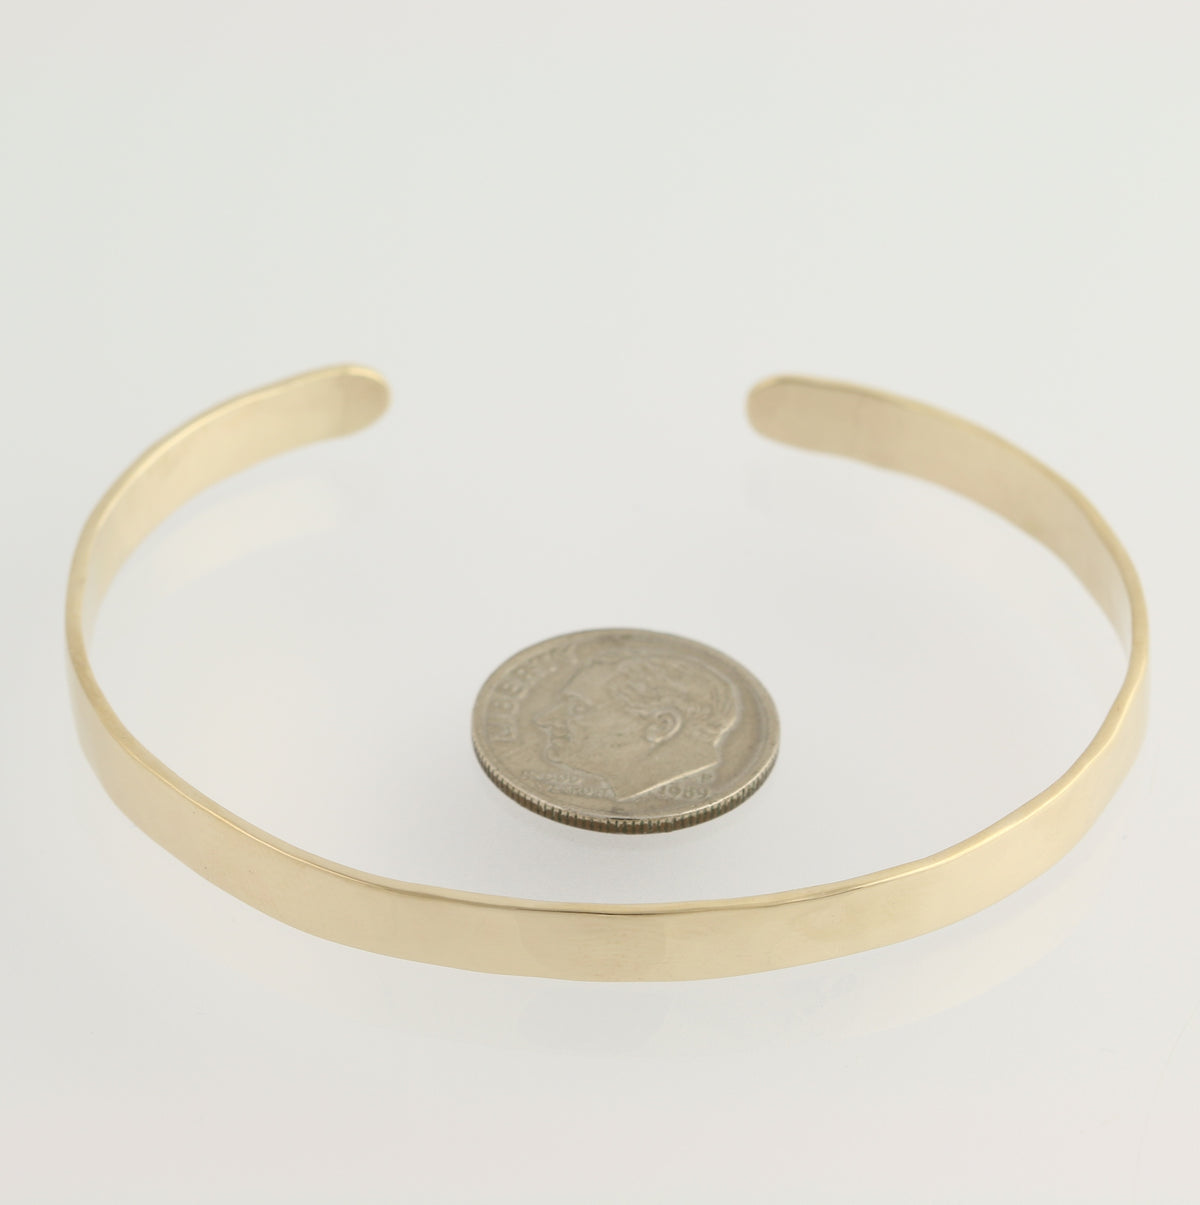 Handcrafted Hammered Gold Cuff Bracelet